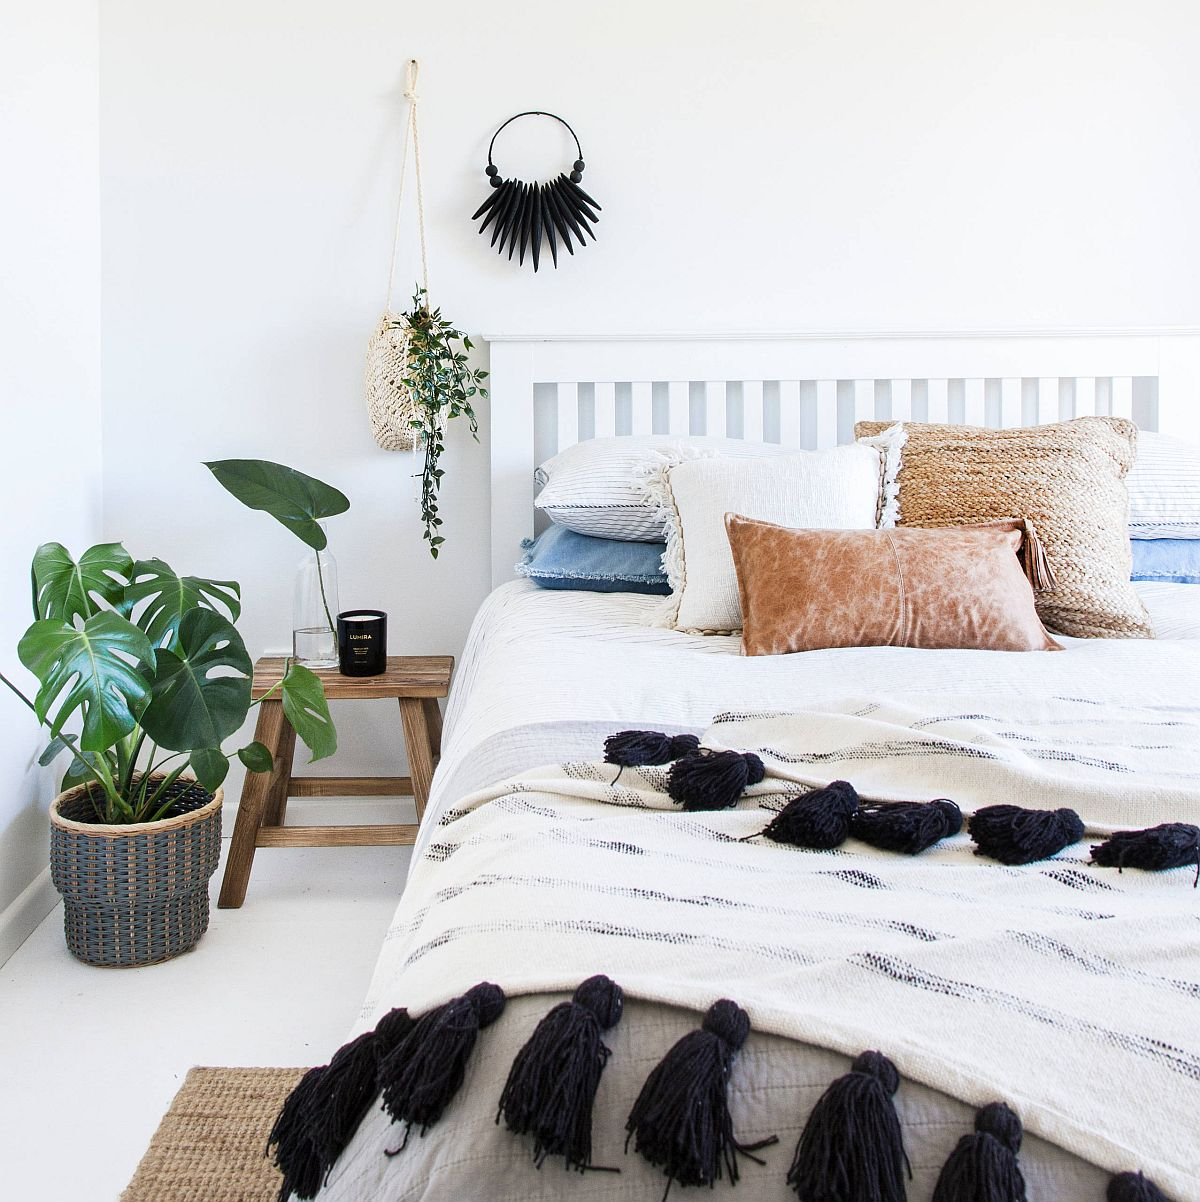 Bedroom in white is a place where you can switch between styles with ease